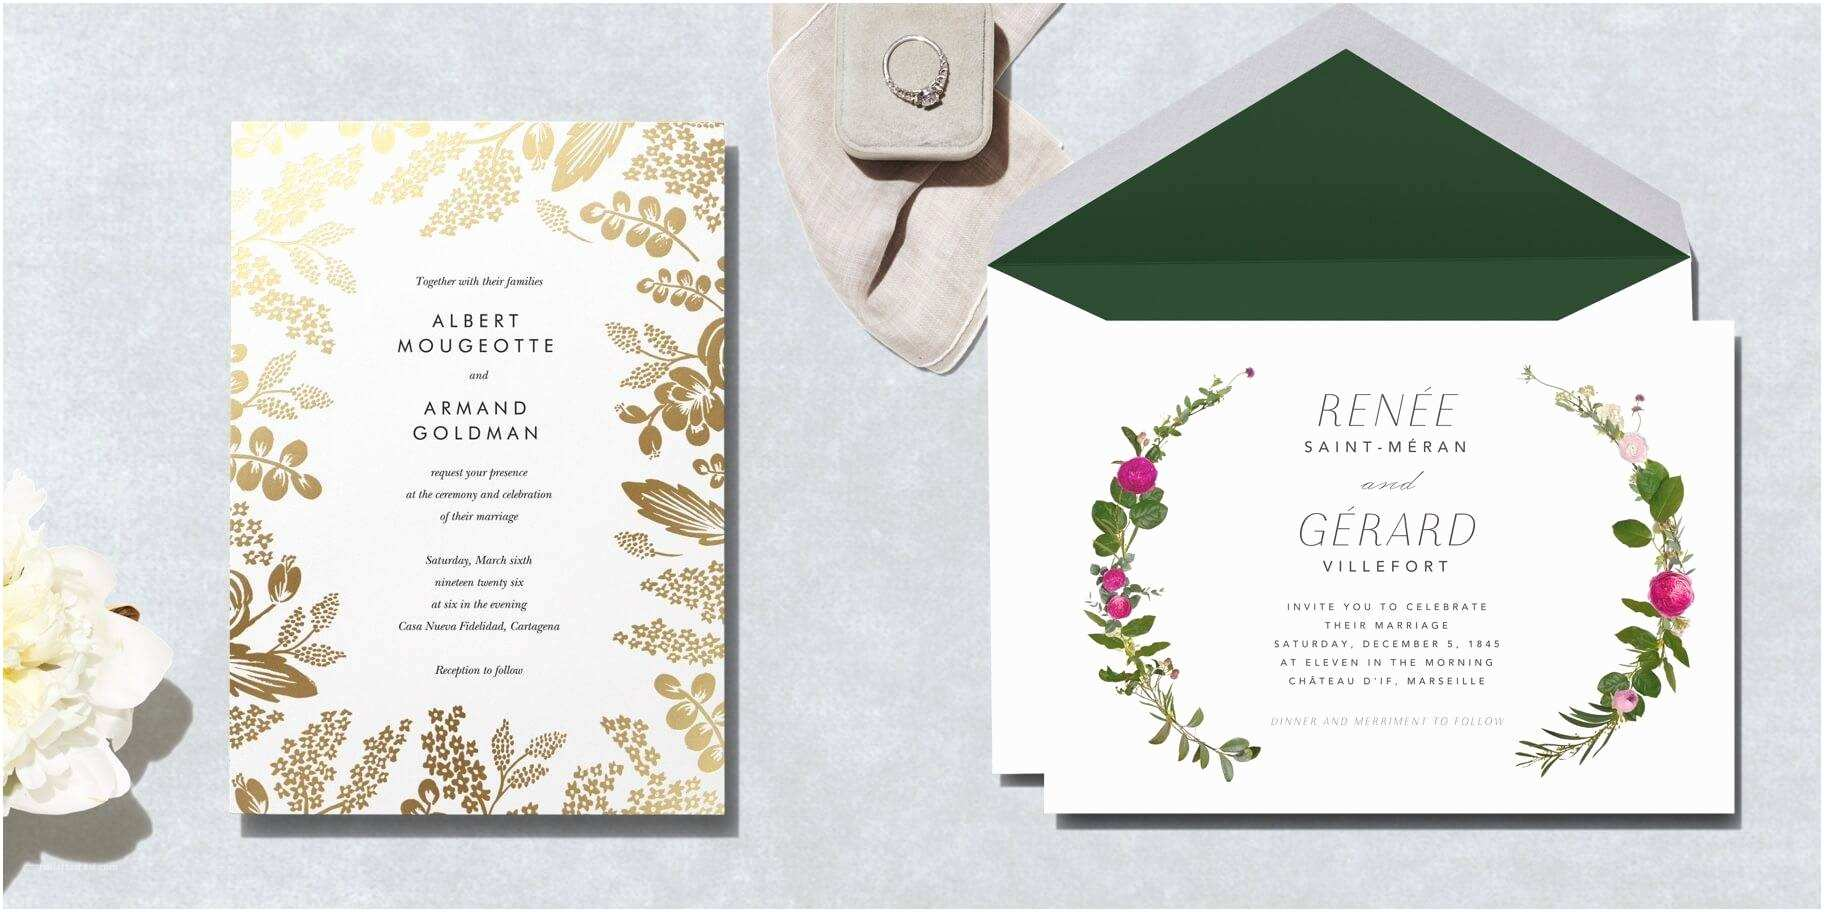 Paperless Wedding Invitations Line Invitations and Cards Custom Paper Designs